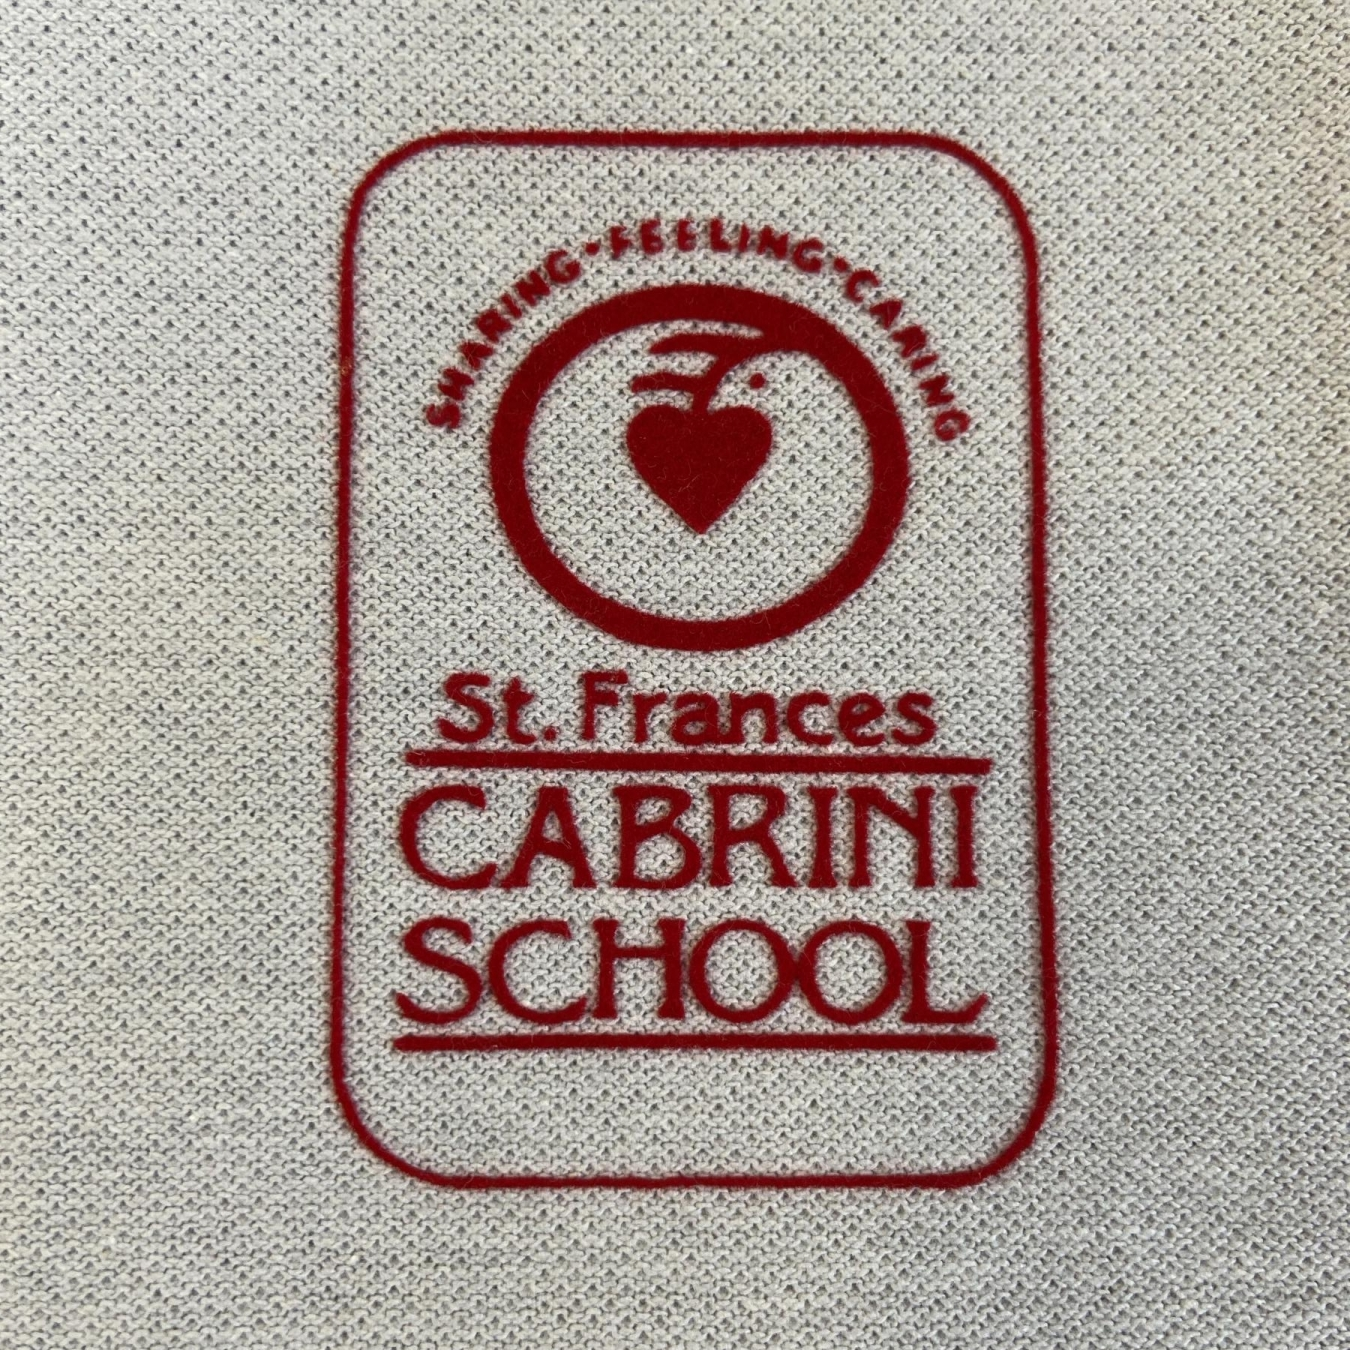 St. Frances Cabrini School Patch Sign Studios